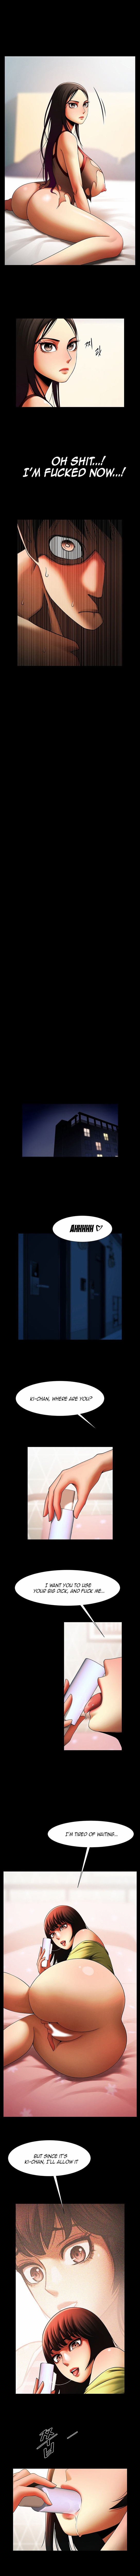 The Woman Who Lives In My Room - chapter 15 - #3